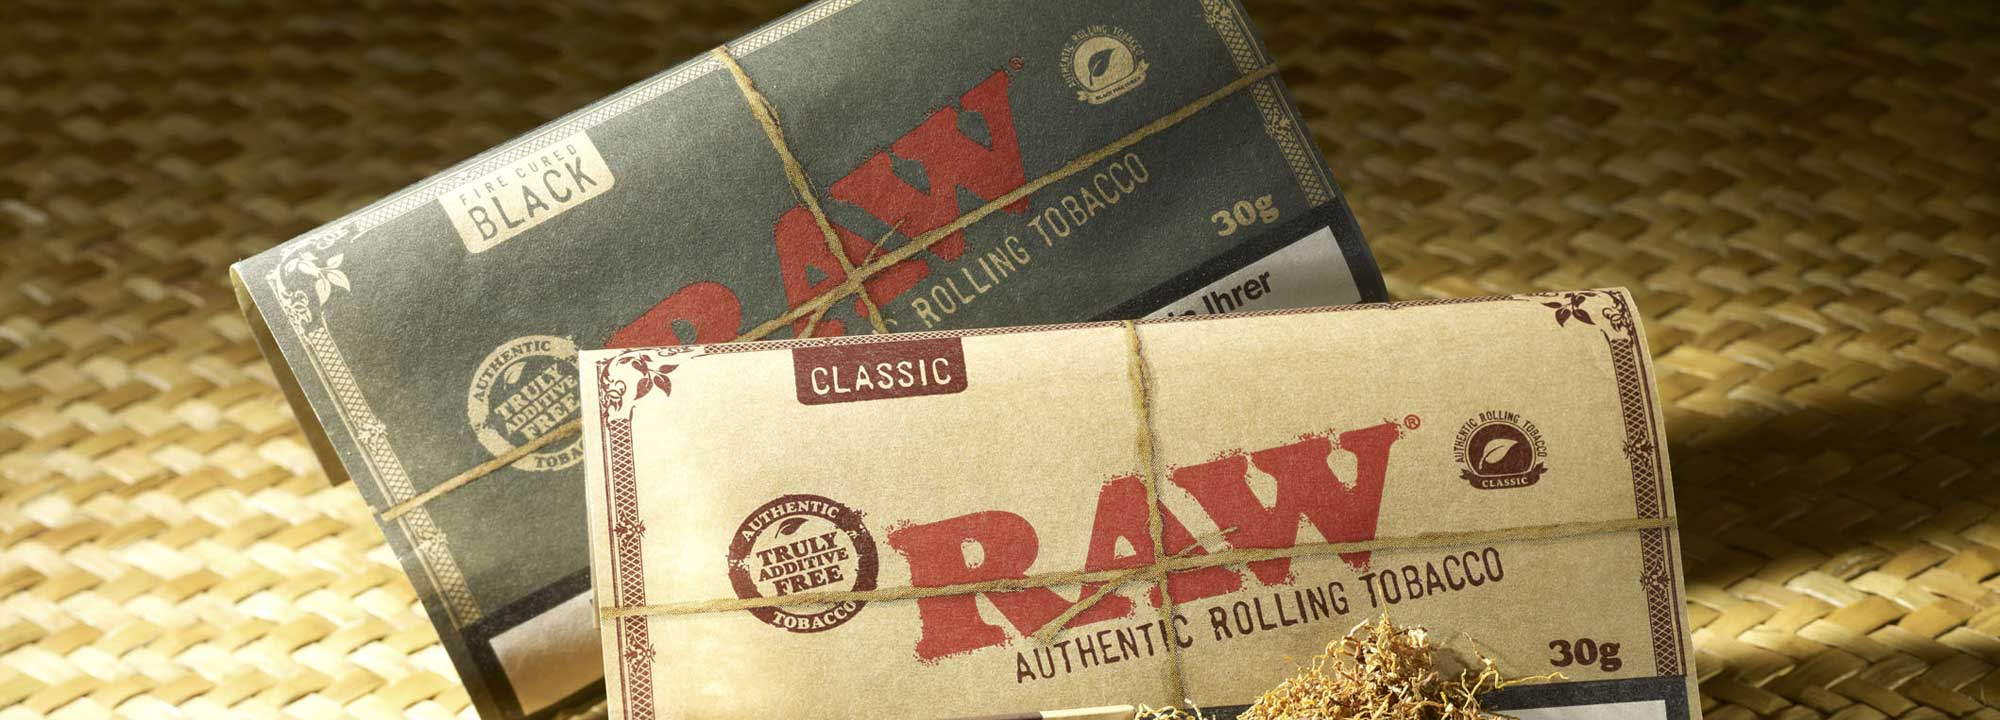 RAW – Natural Authentic Tobacco